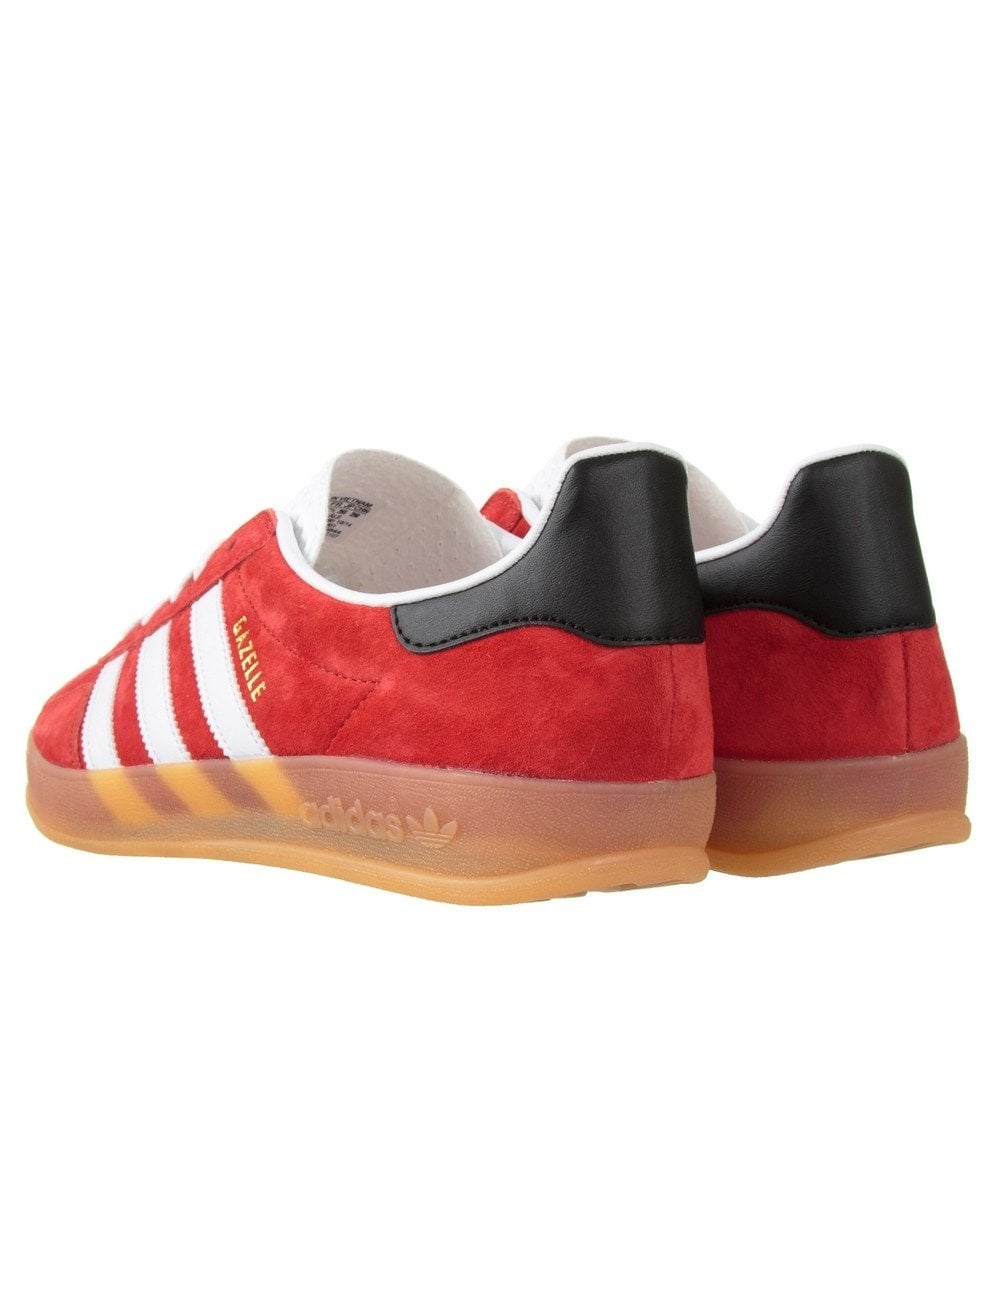 From Redwhite Shoes Footwear Originals Indoor Adidas Gazelle FqwTYI1z